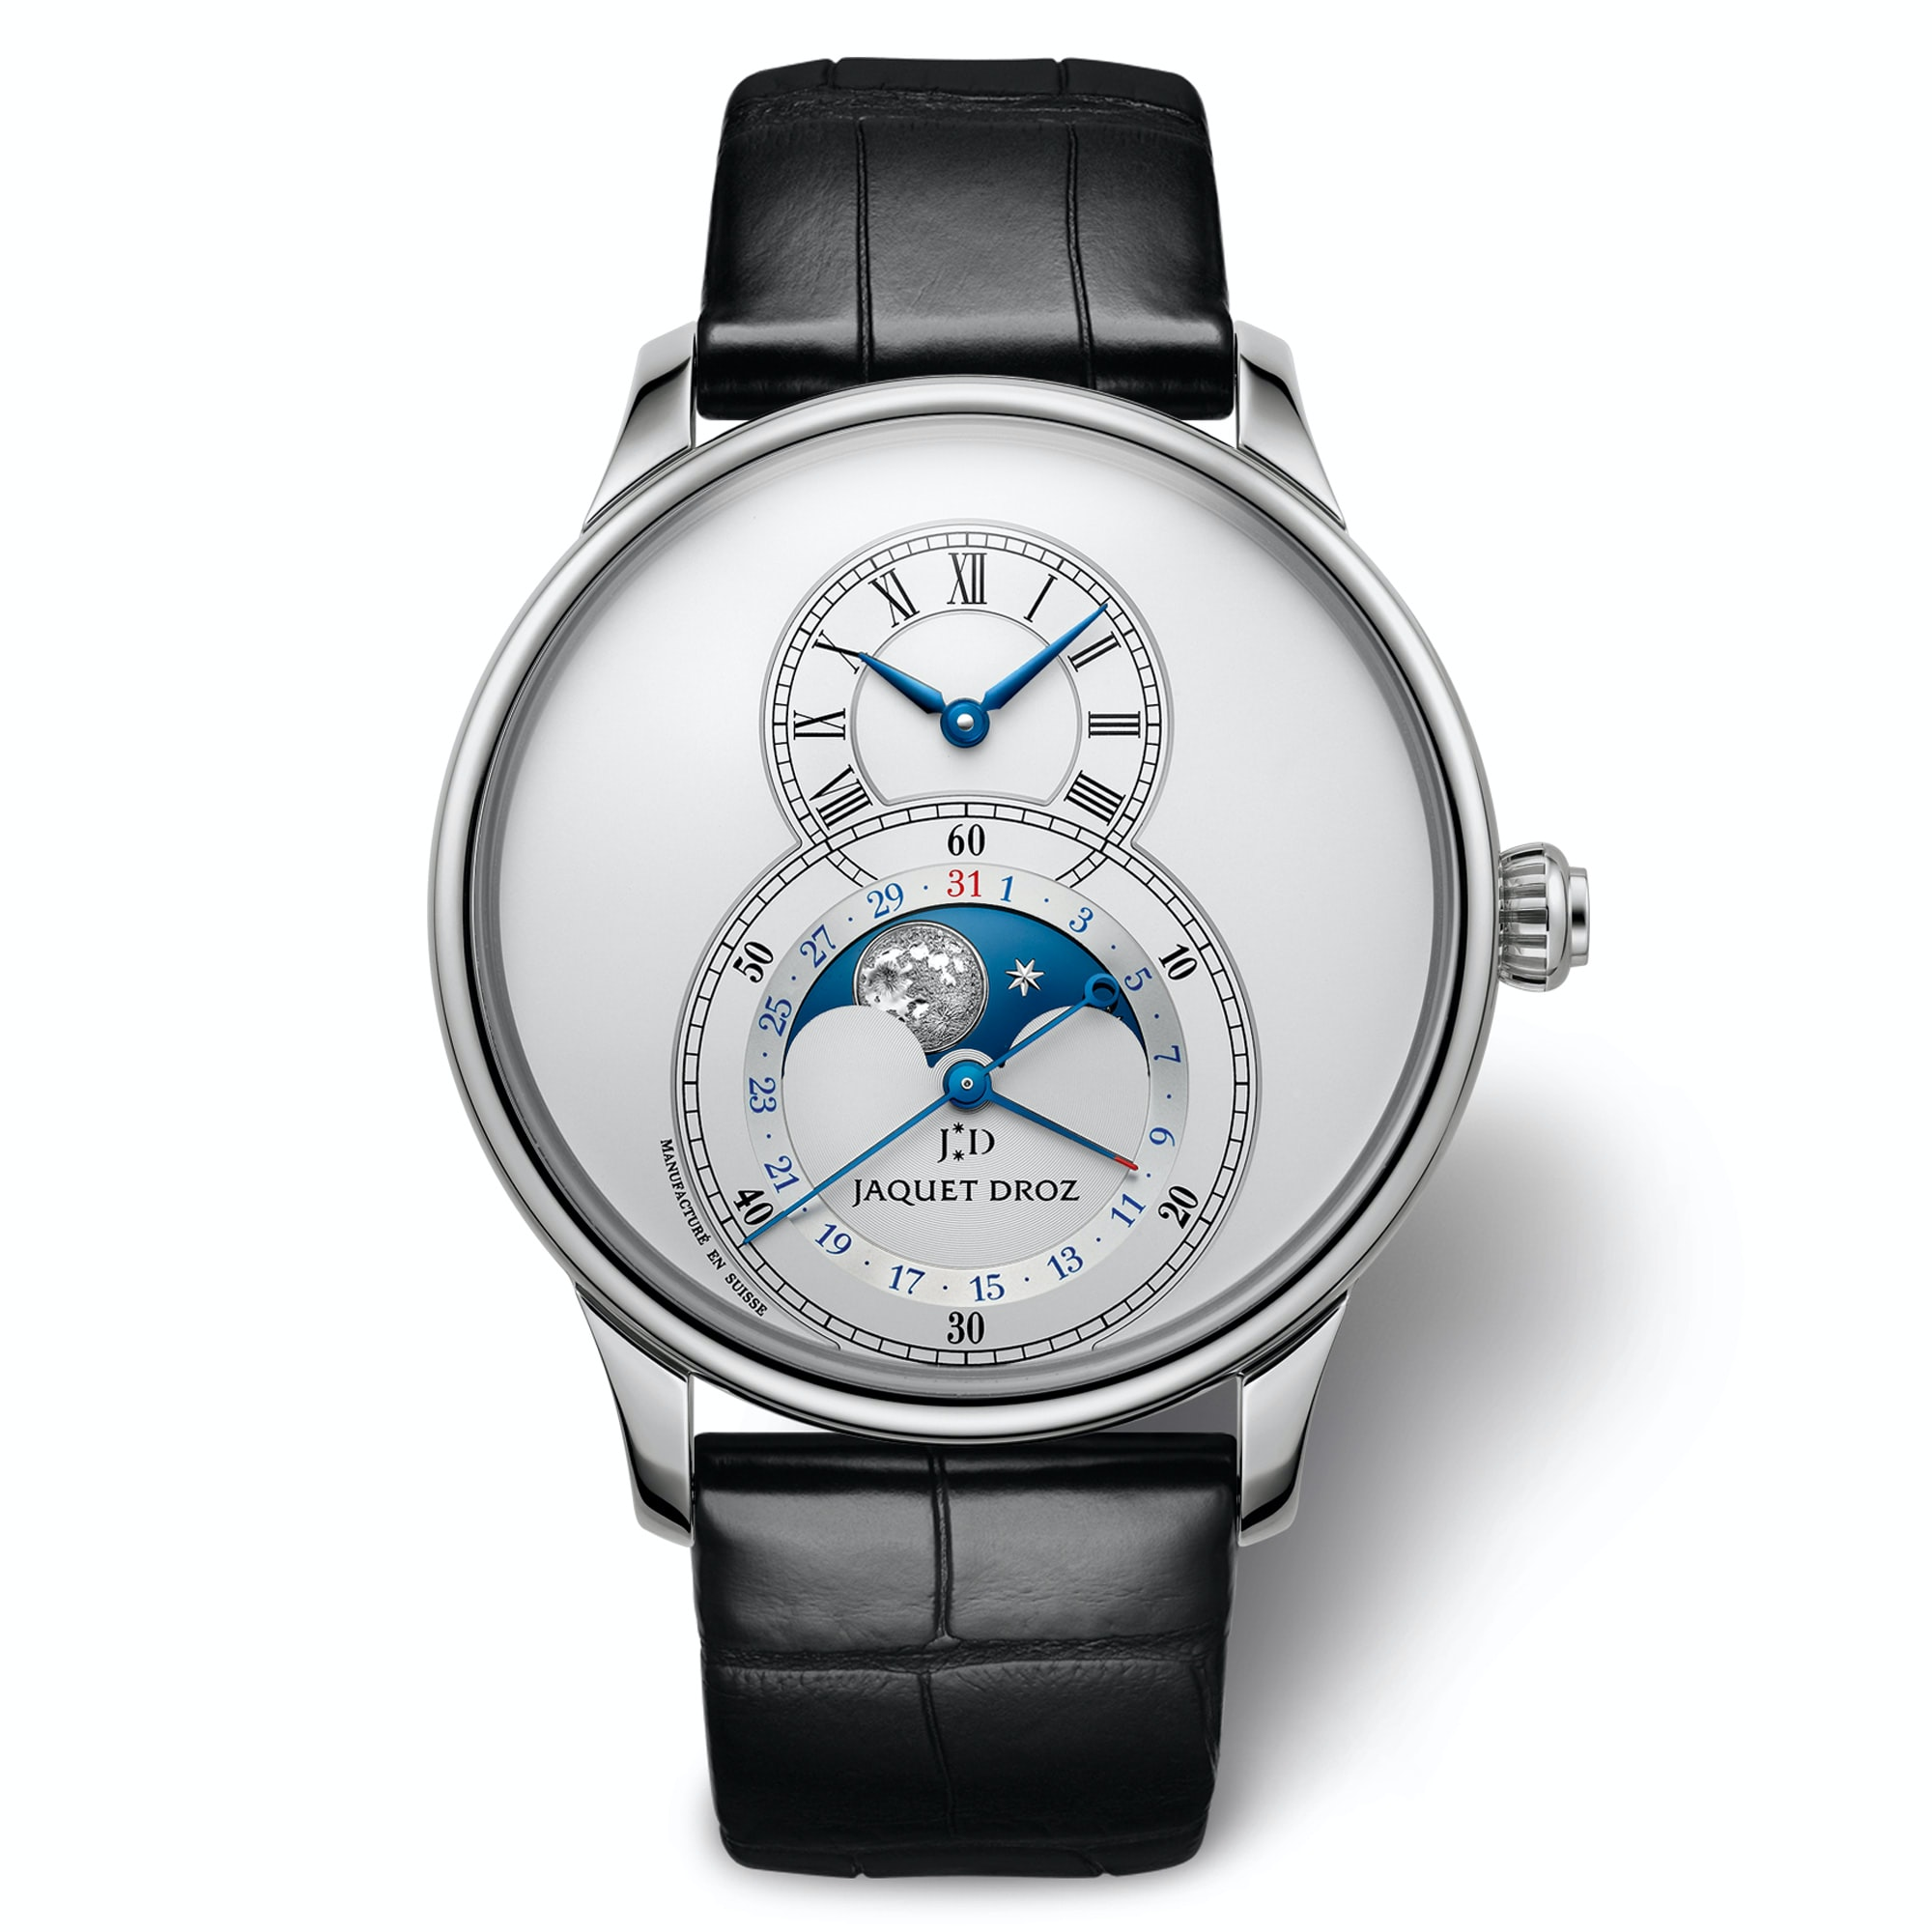 The most classic-looking model has a silvered dial with blue hands and a bright blue moonphase disc. Introducing: The Jaquet Droz Grande Seconde Moon Phase Introducing: The Jaquet Droz Grande Seconde Moon Phase jd 04